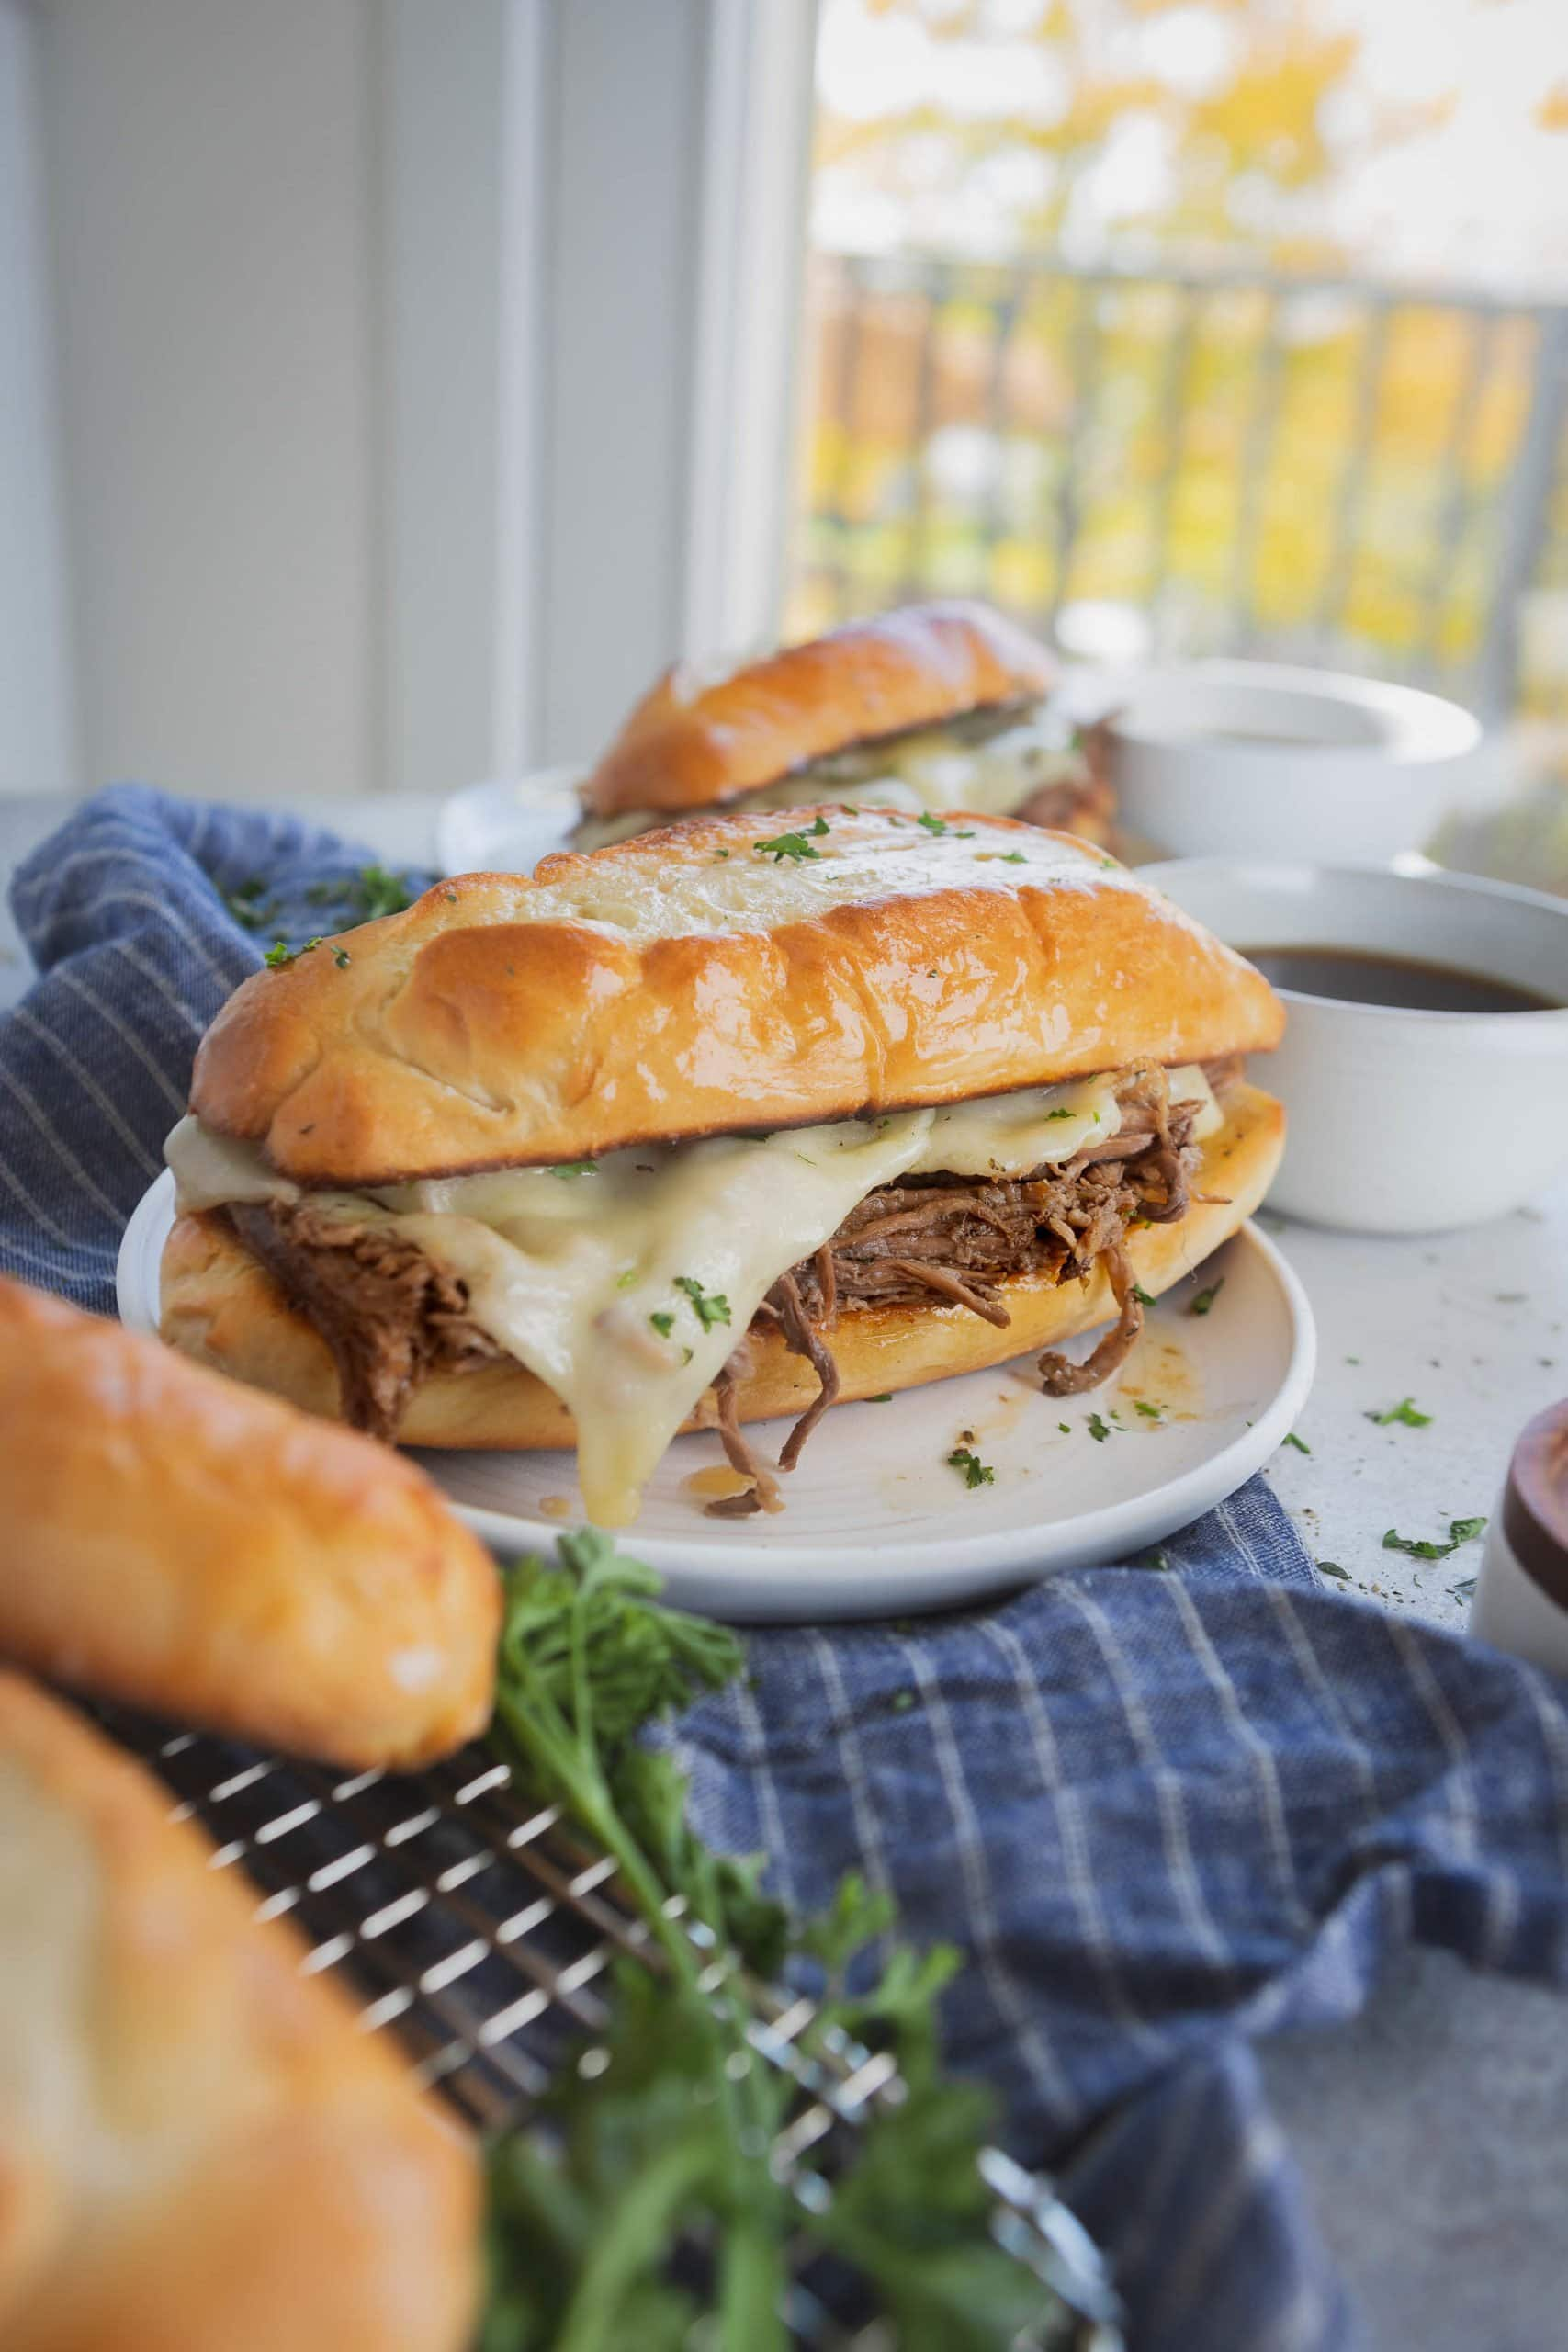 A French dip sandwich on a white plate. The cheese is melted over the beef. Another sandwich is in the background and two hoagie rolls are sitting on the table.